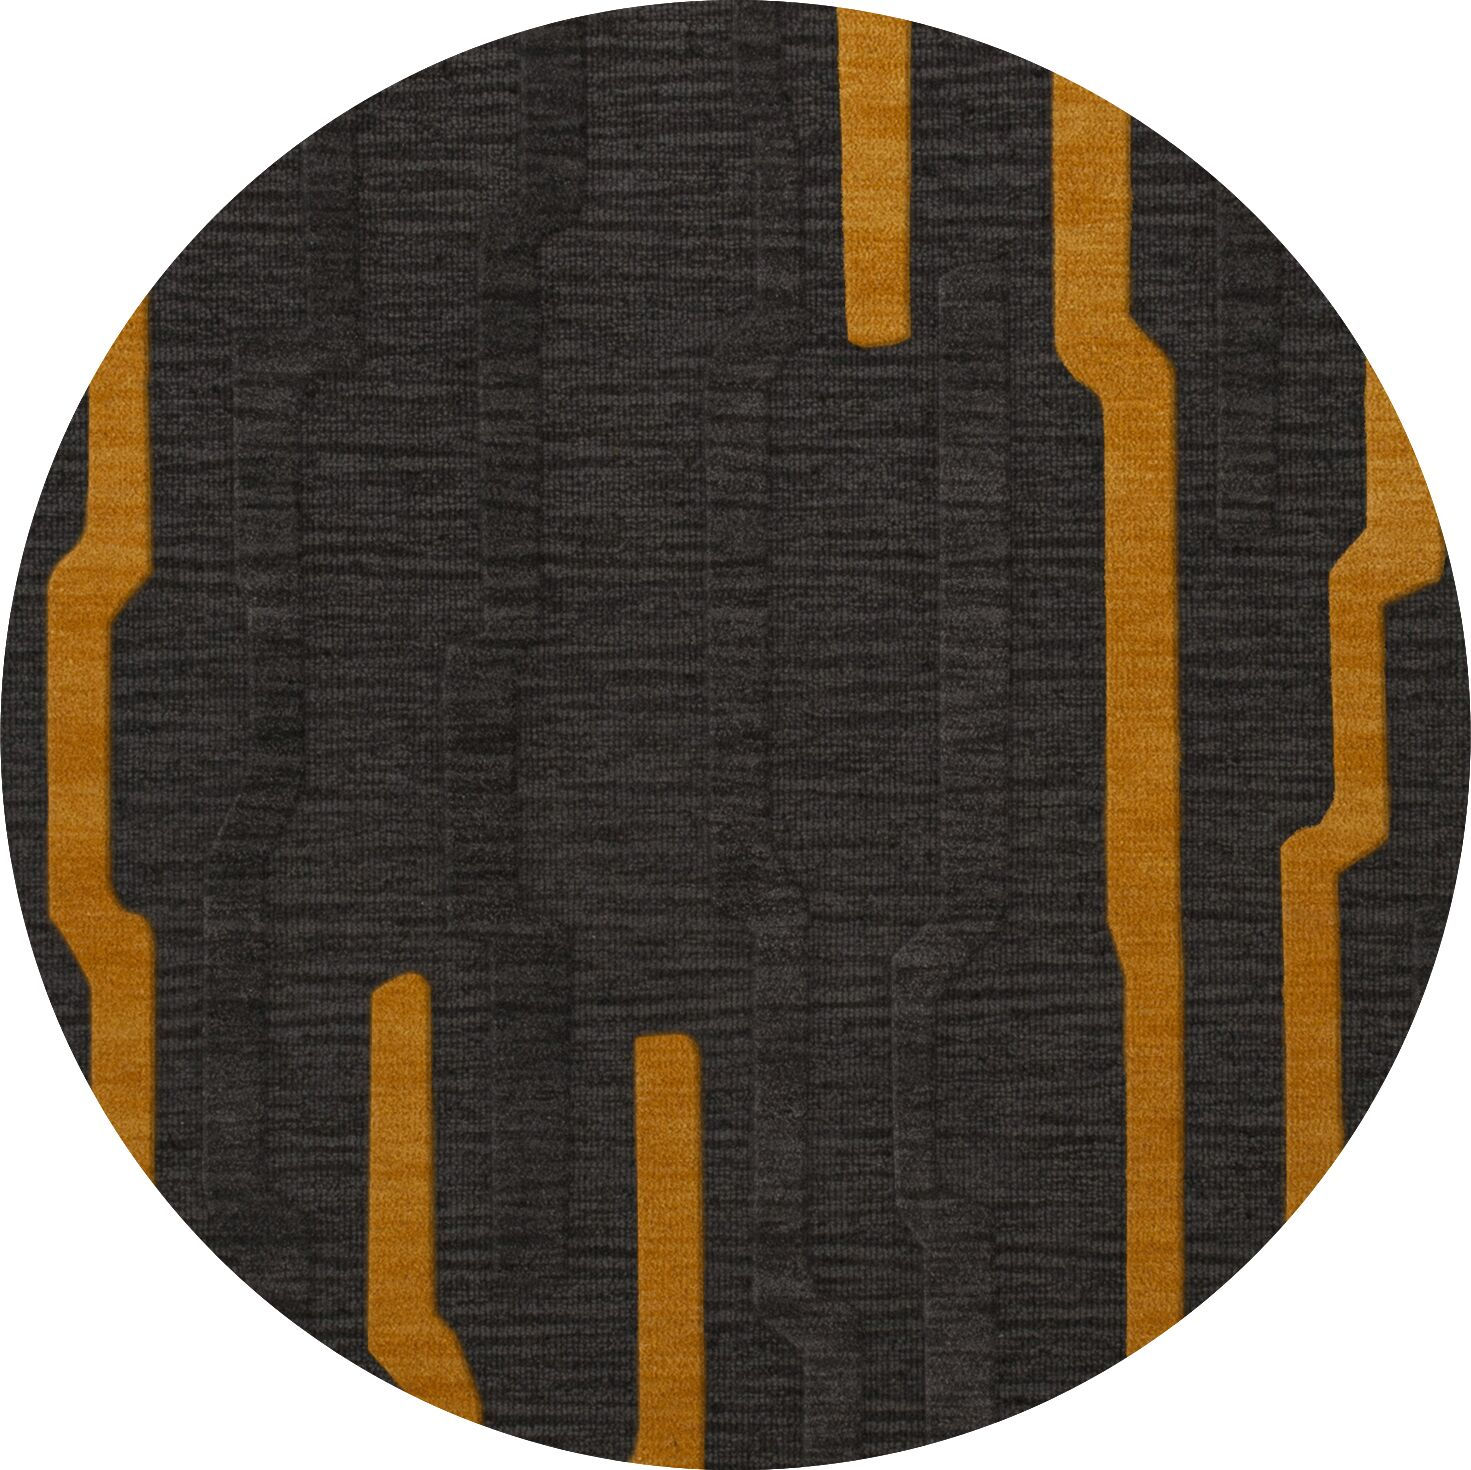 Haskett Wool Seal Area Rug Rug Size: Round 6'